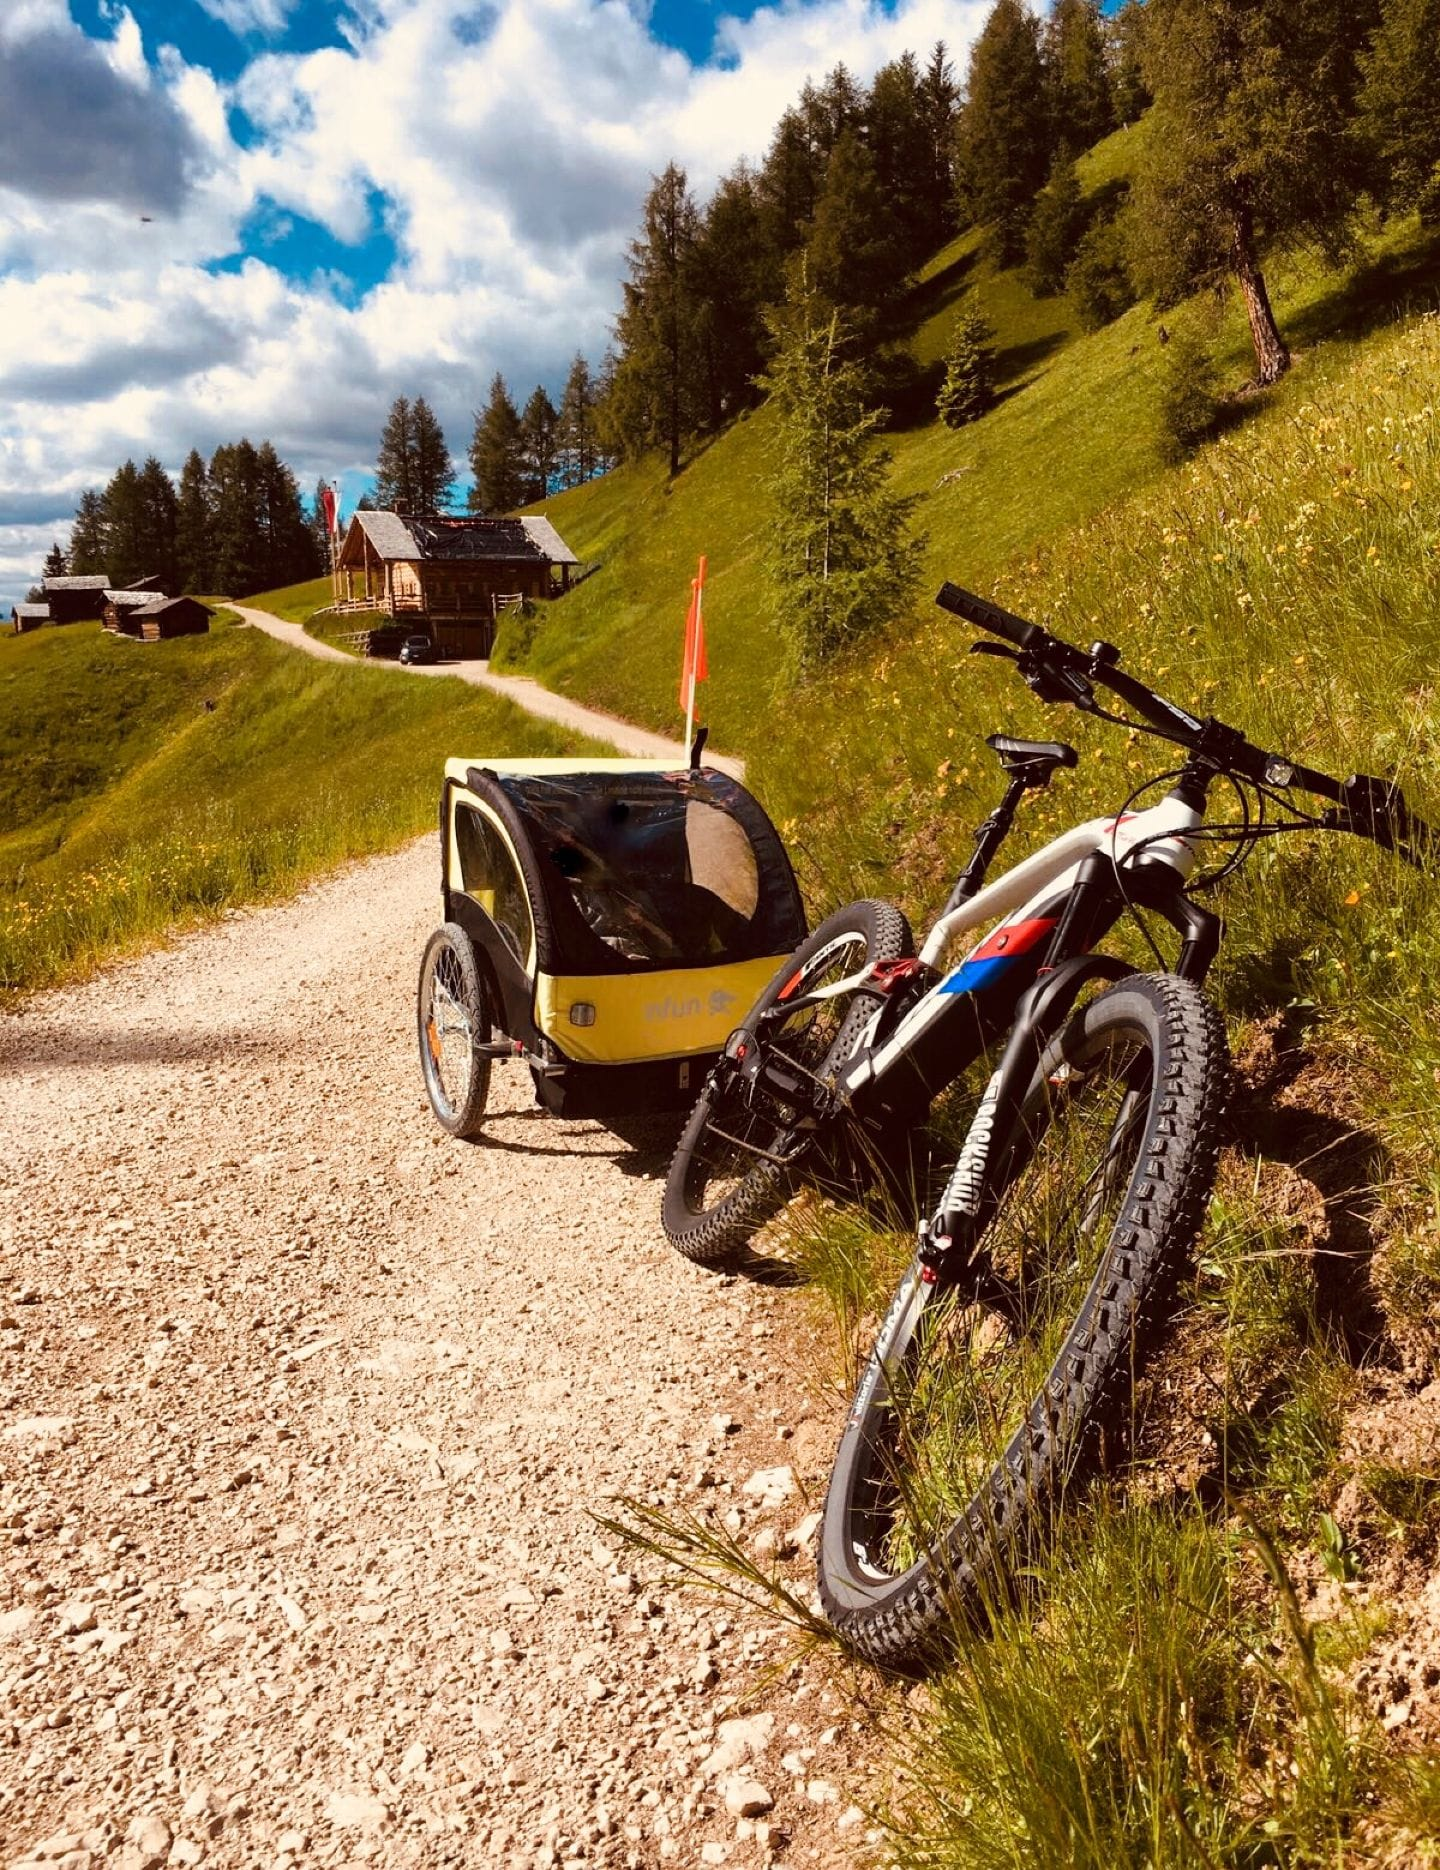 A fabulous e-bike tour for families